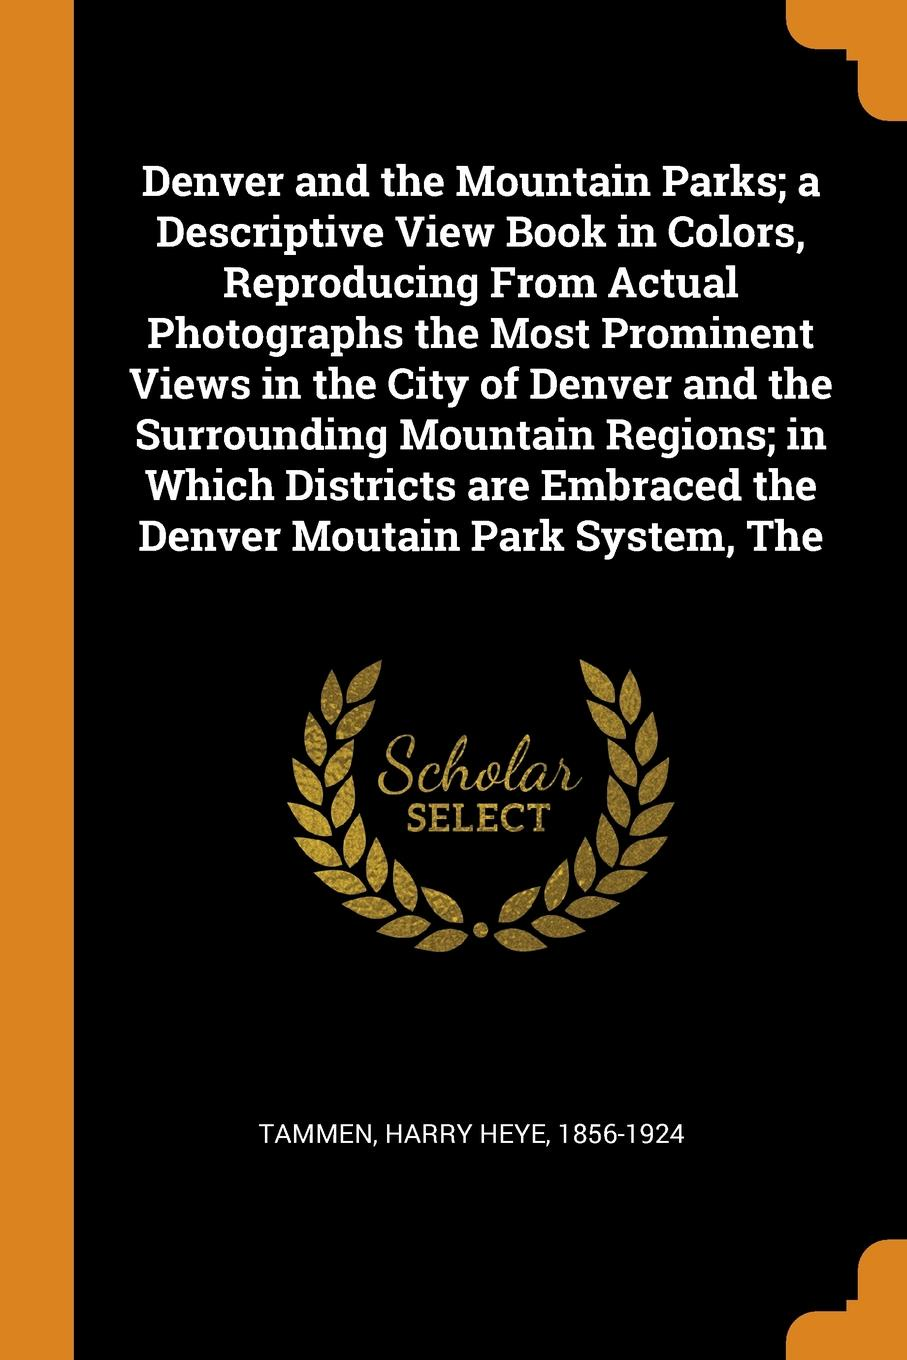 Harry Heye Tammen Denver and the Mountain Parks; a Descriptive View Book in Colors, Reproducing From Actual Photographs the Most Prominent Views in the City of Denver and the Surrounding Mountain Regions; in Which Districts are Embraced the Denver Moutain Park Syst... the denver homeopathic college